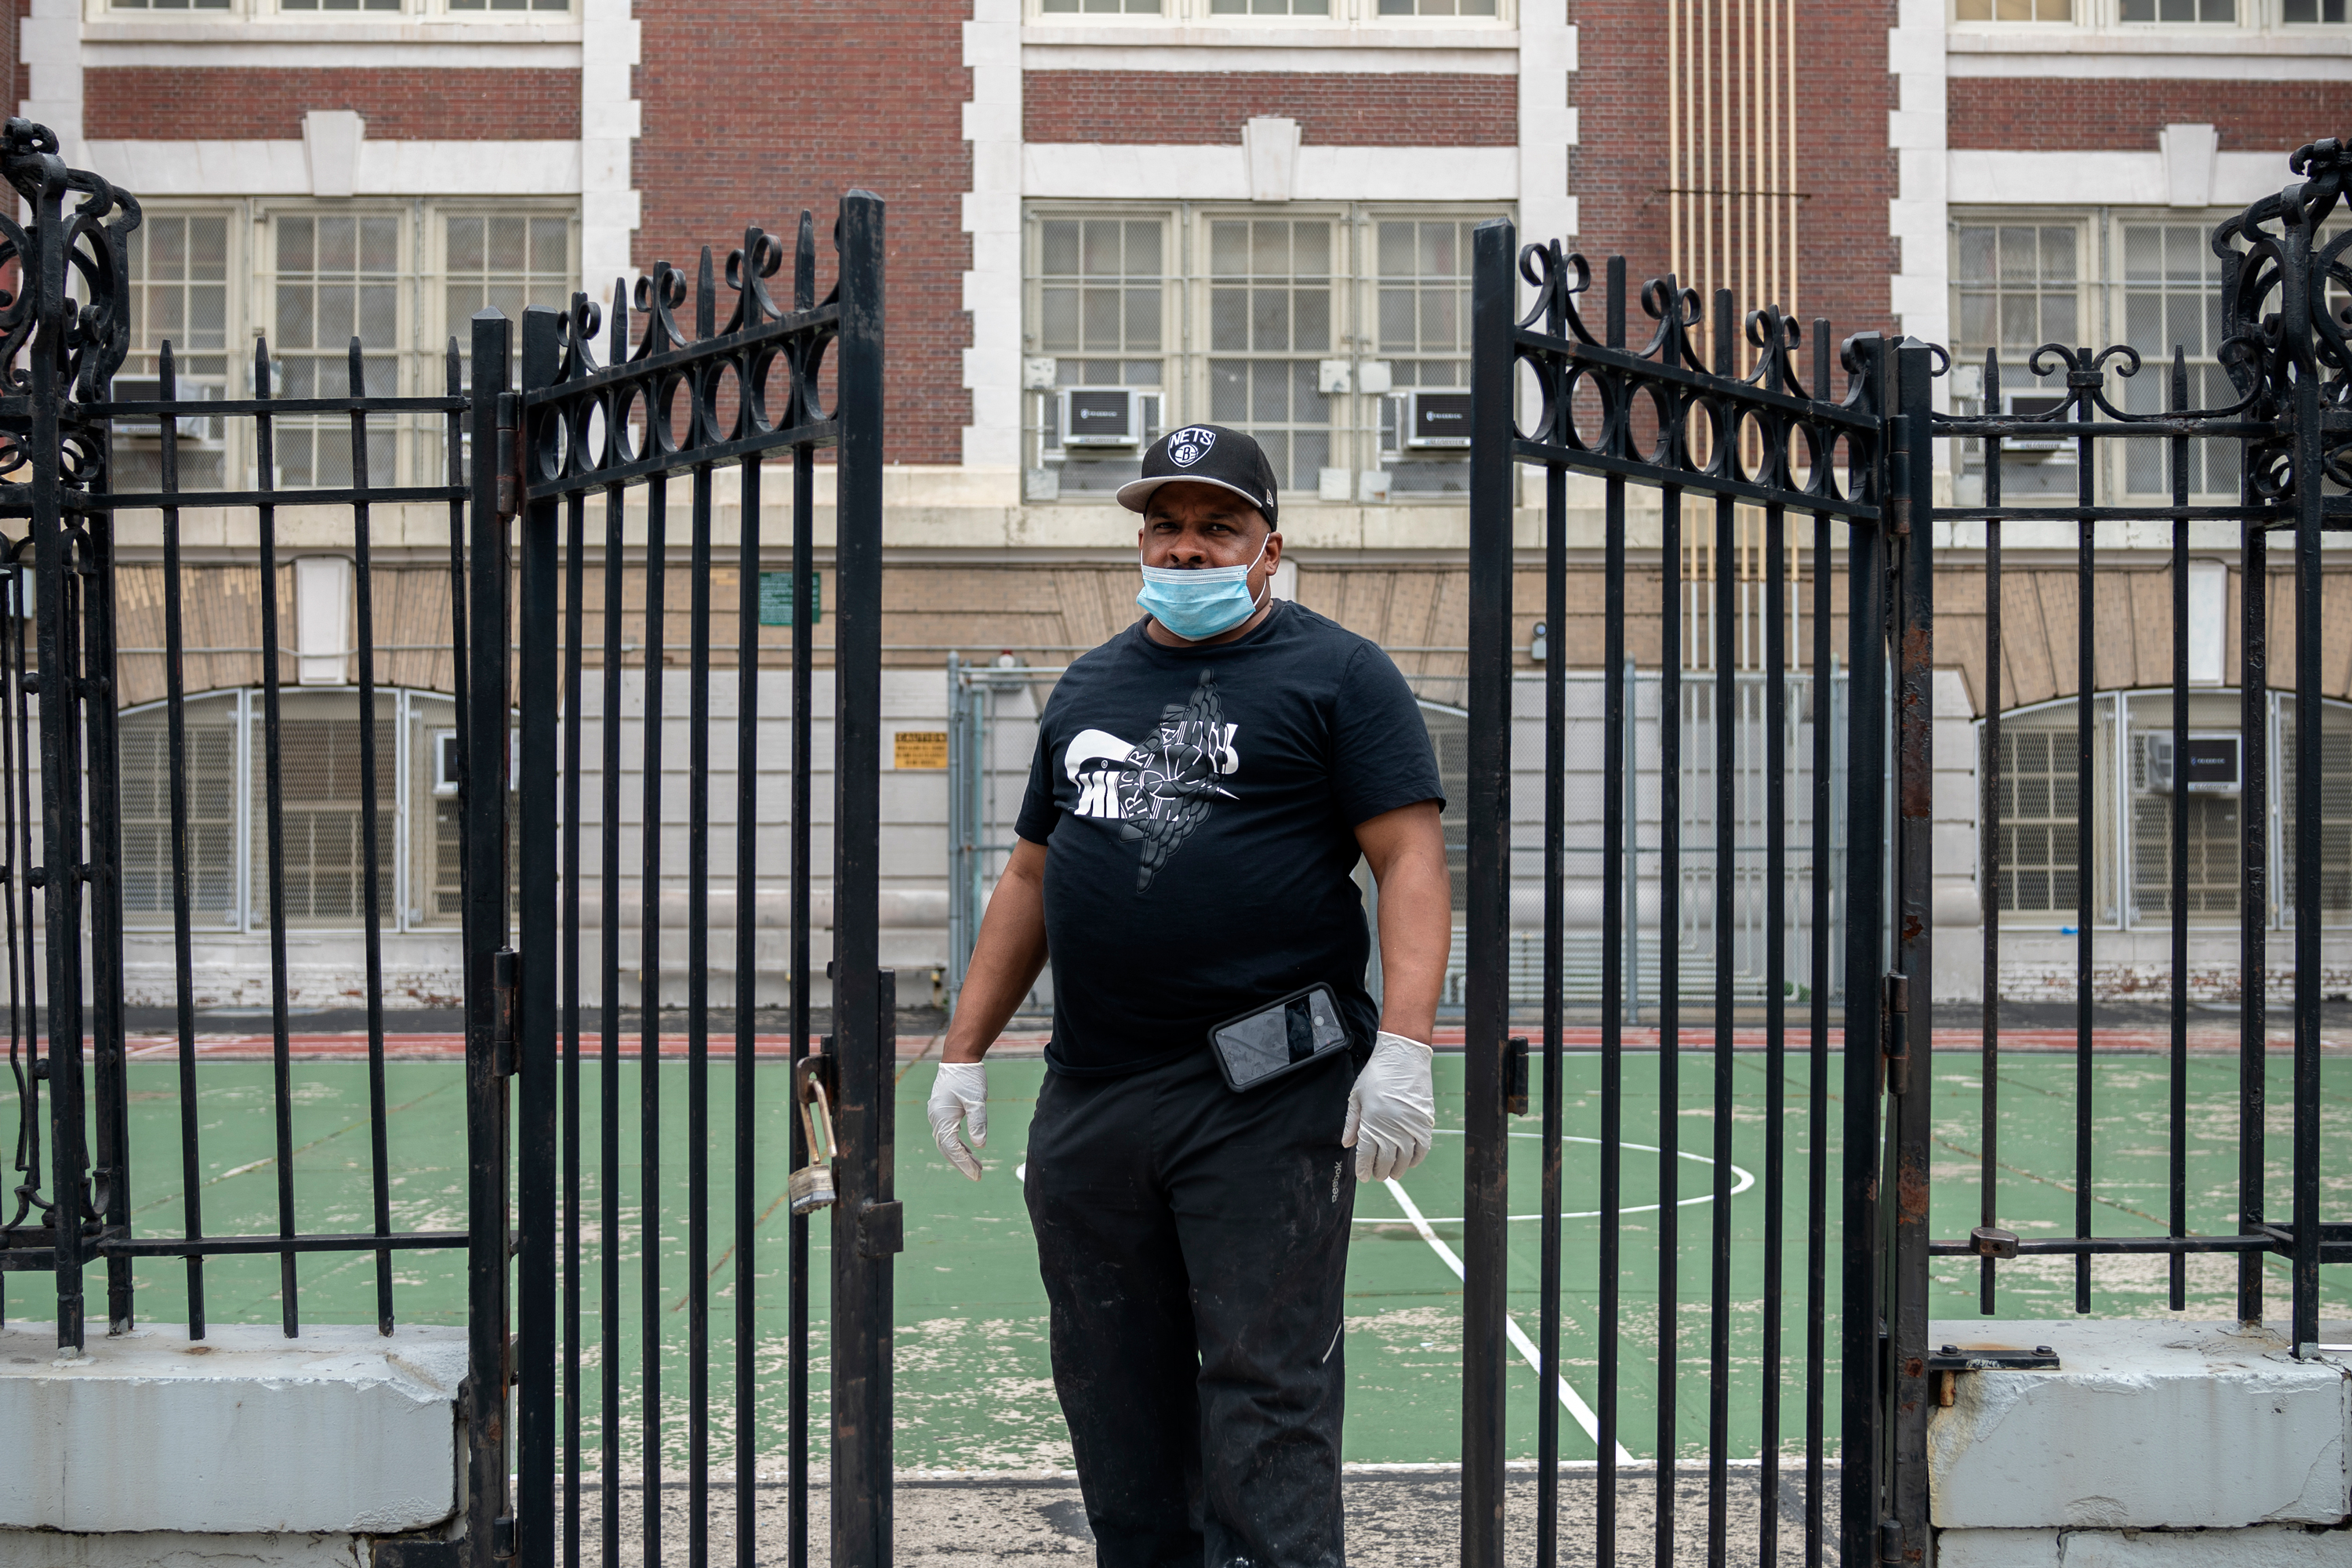 """""""Everyday I come to work I make a life or death gamble,"""" said Warren Allen, a cleaner at P.S. 149 in East New York, June, 5, 2020. """"But I just follow the orders I'm given, if the school says I have to be here every day from then that's what I'm going to do to make sure it's ready for the kids when they come back to school."""""""